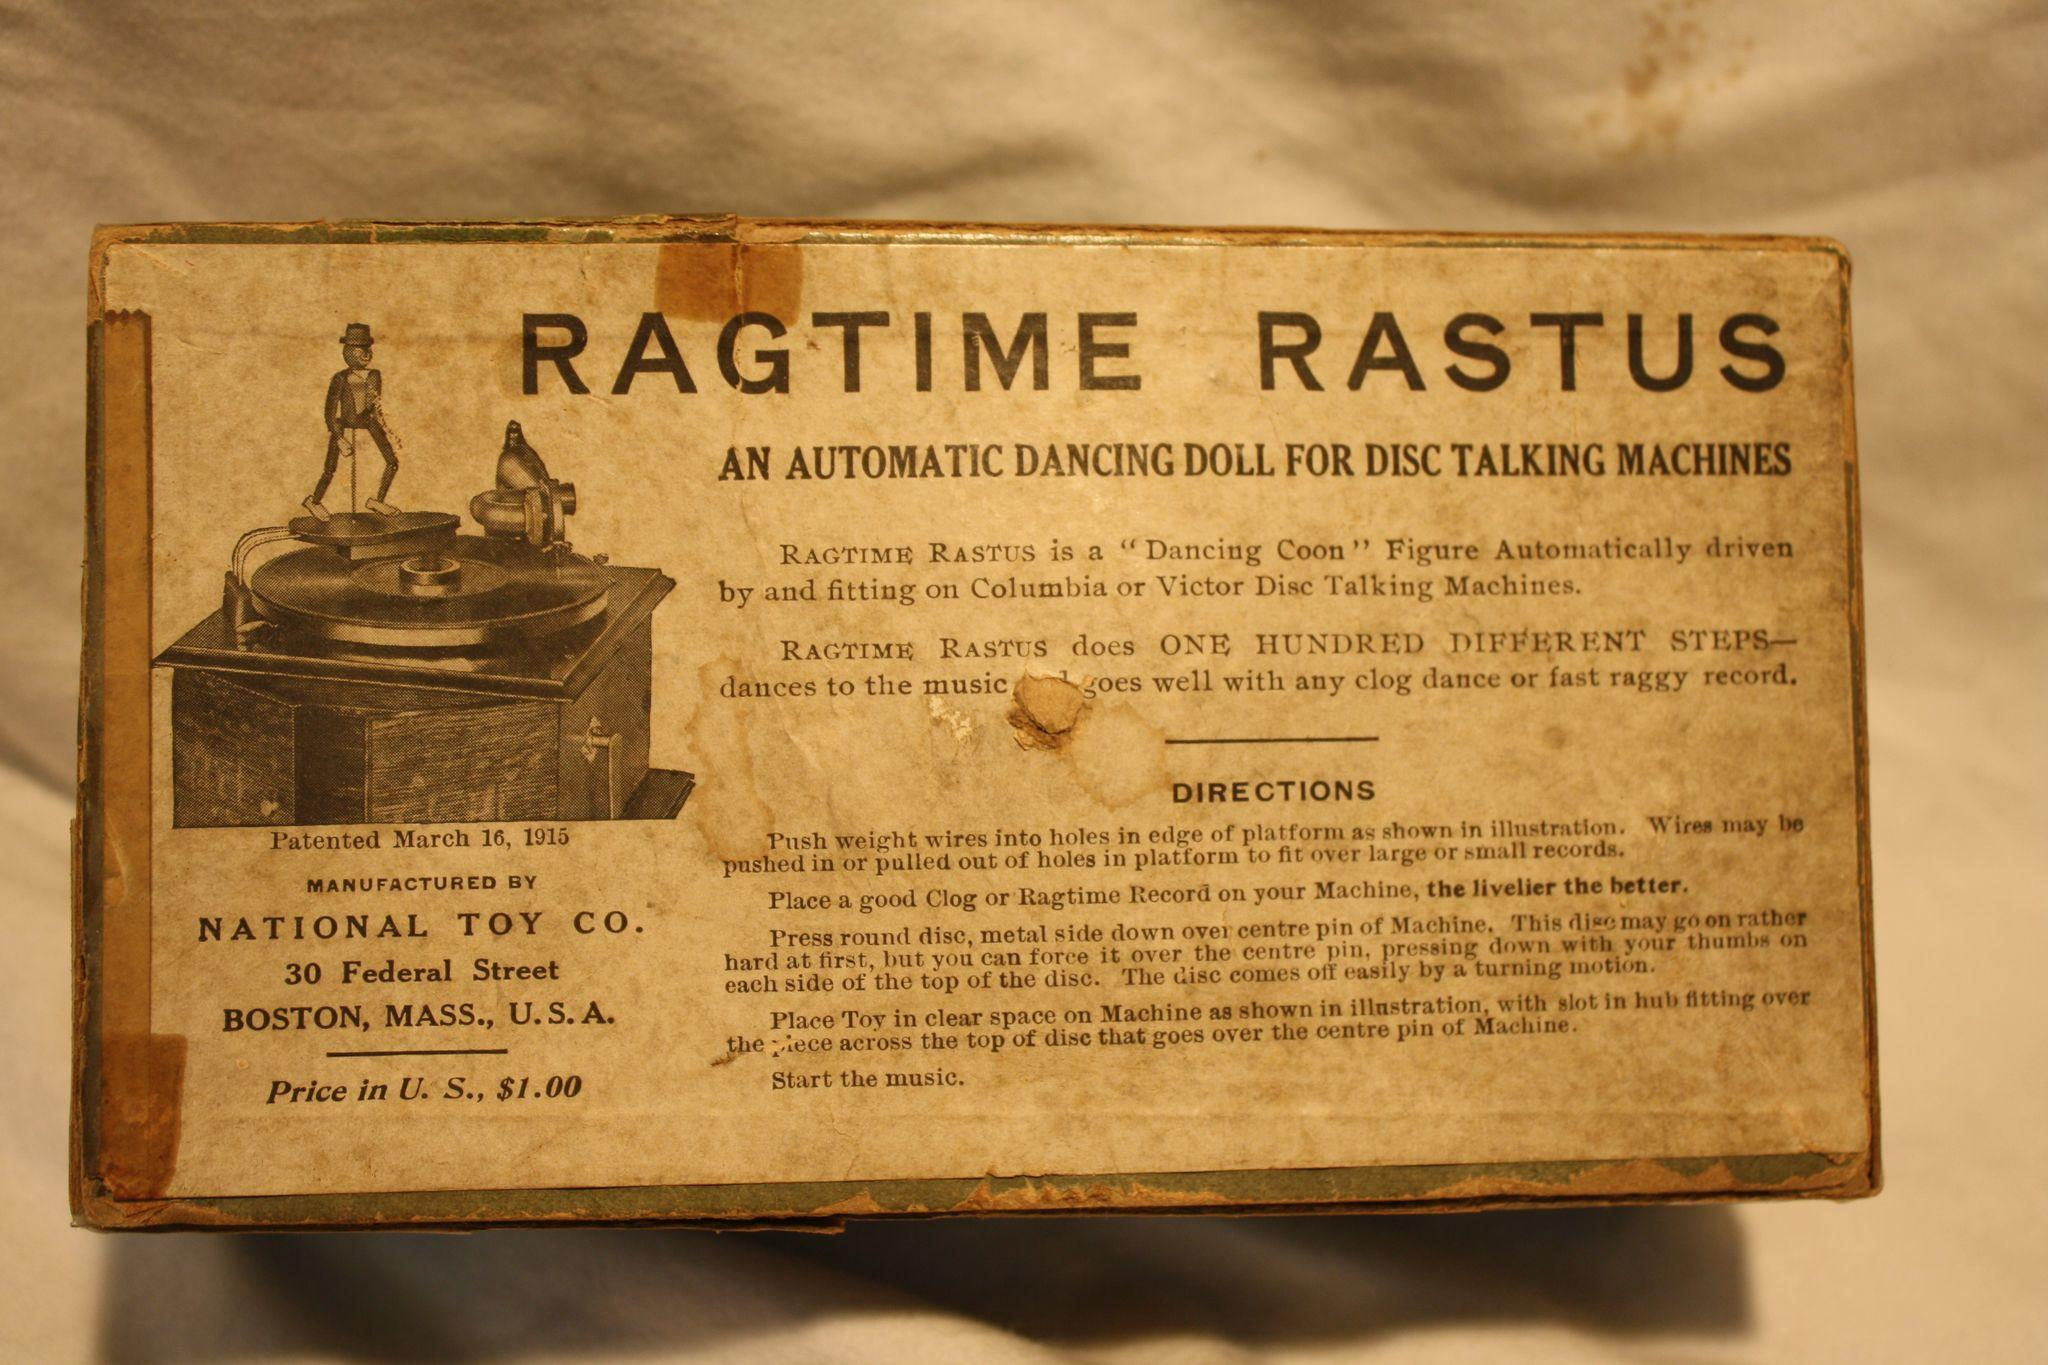 ragtime a time of change Style sheets characteristics of ragtime ragtime was essentially a piano music the time period that the music was at its height was 1900-1920 the demise of ragtime by 1920 ragtime had become a national fad in watered down, ricky-tick form.